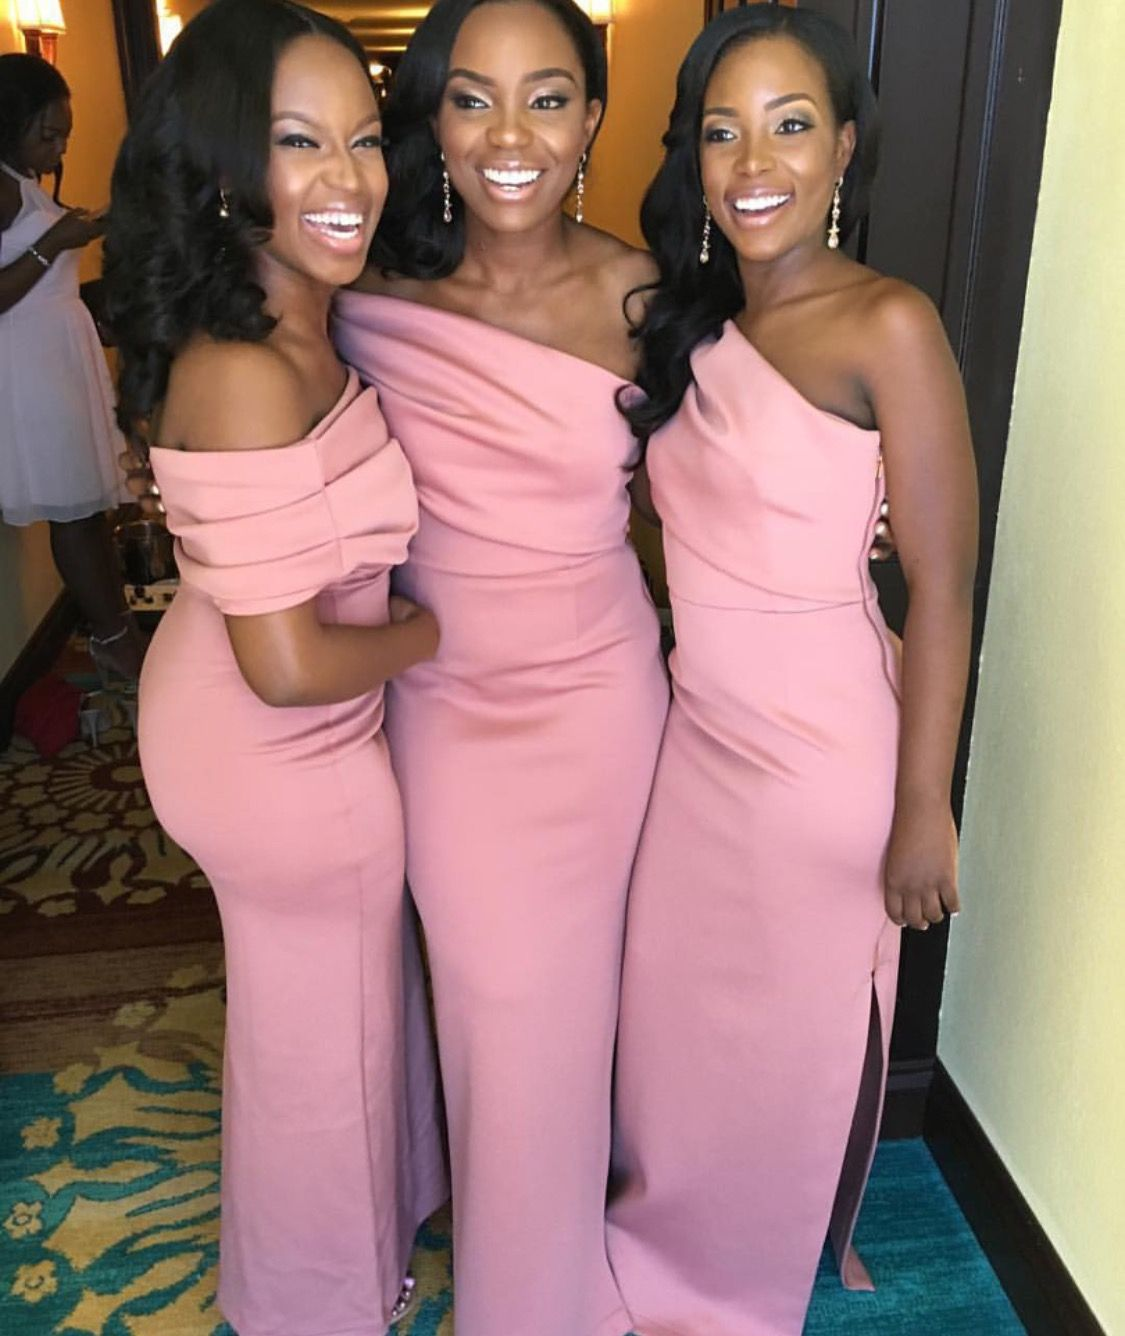 Pin by Nadja Baptiste on bridesmaid dresses | Pinterest | Bridesmaid ...